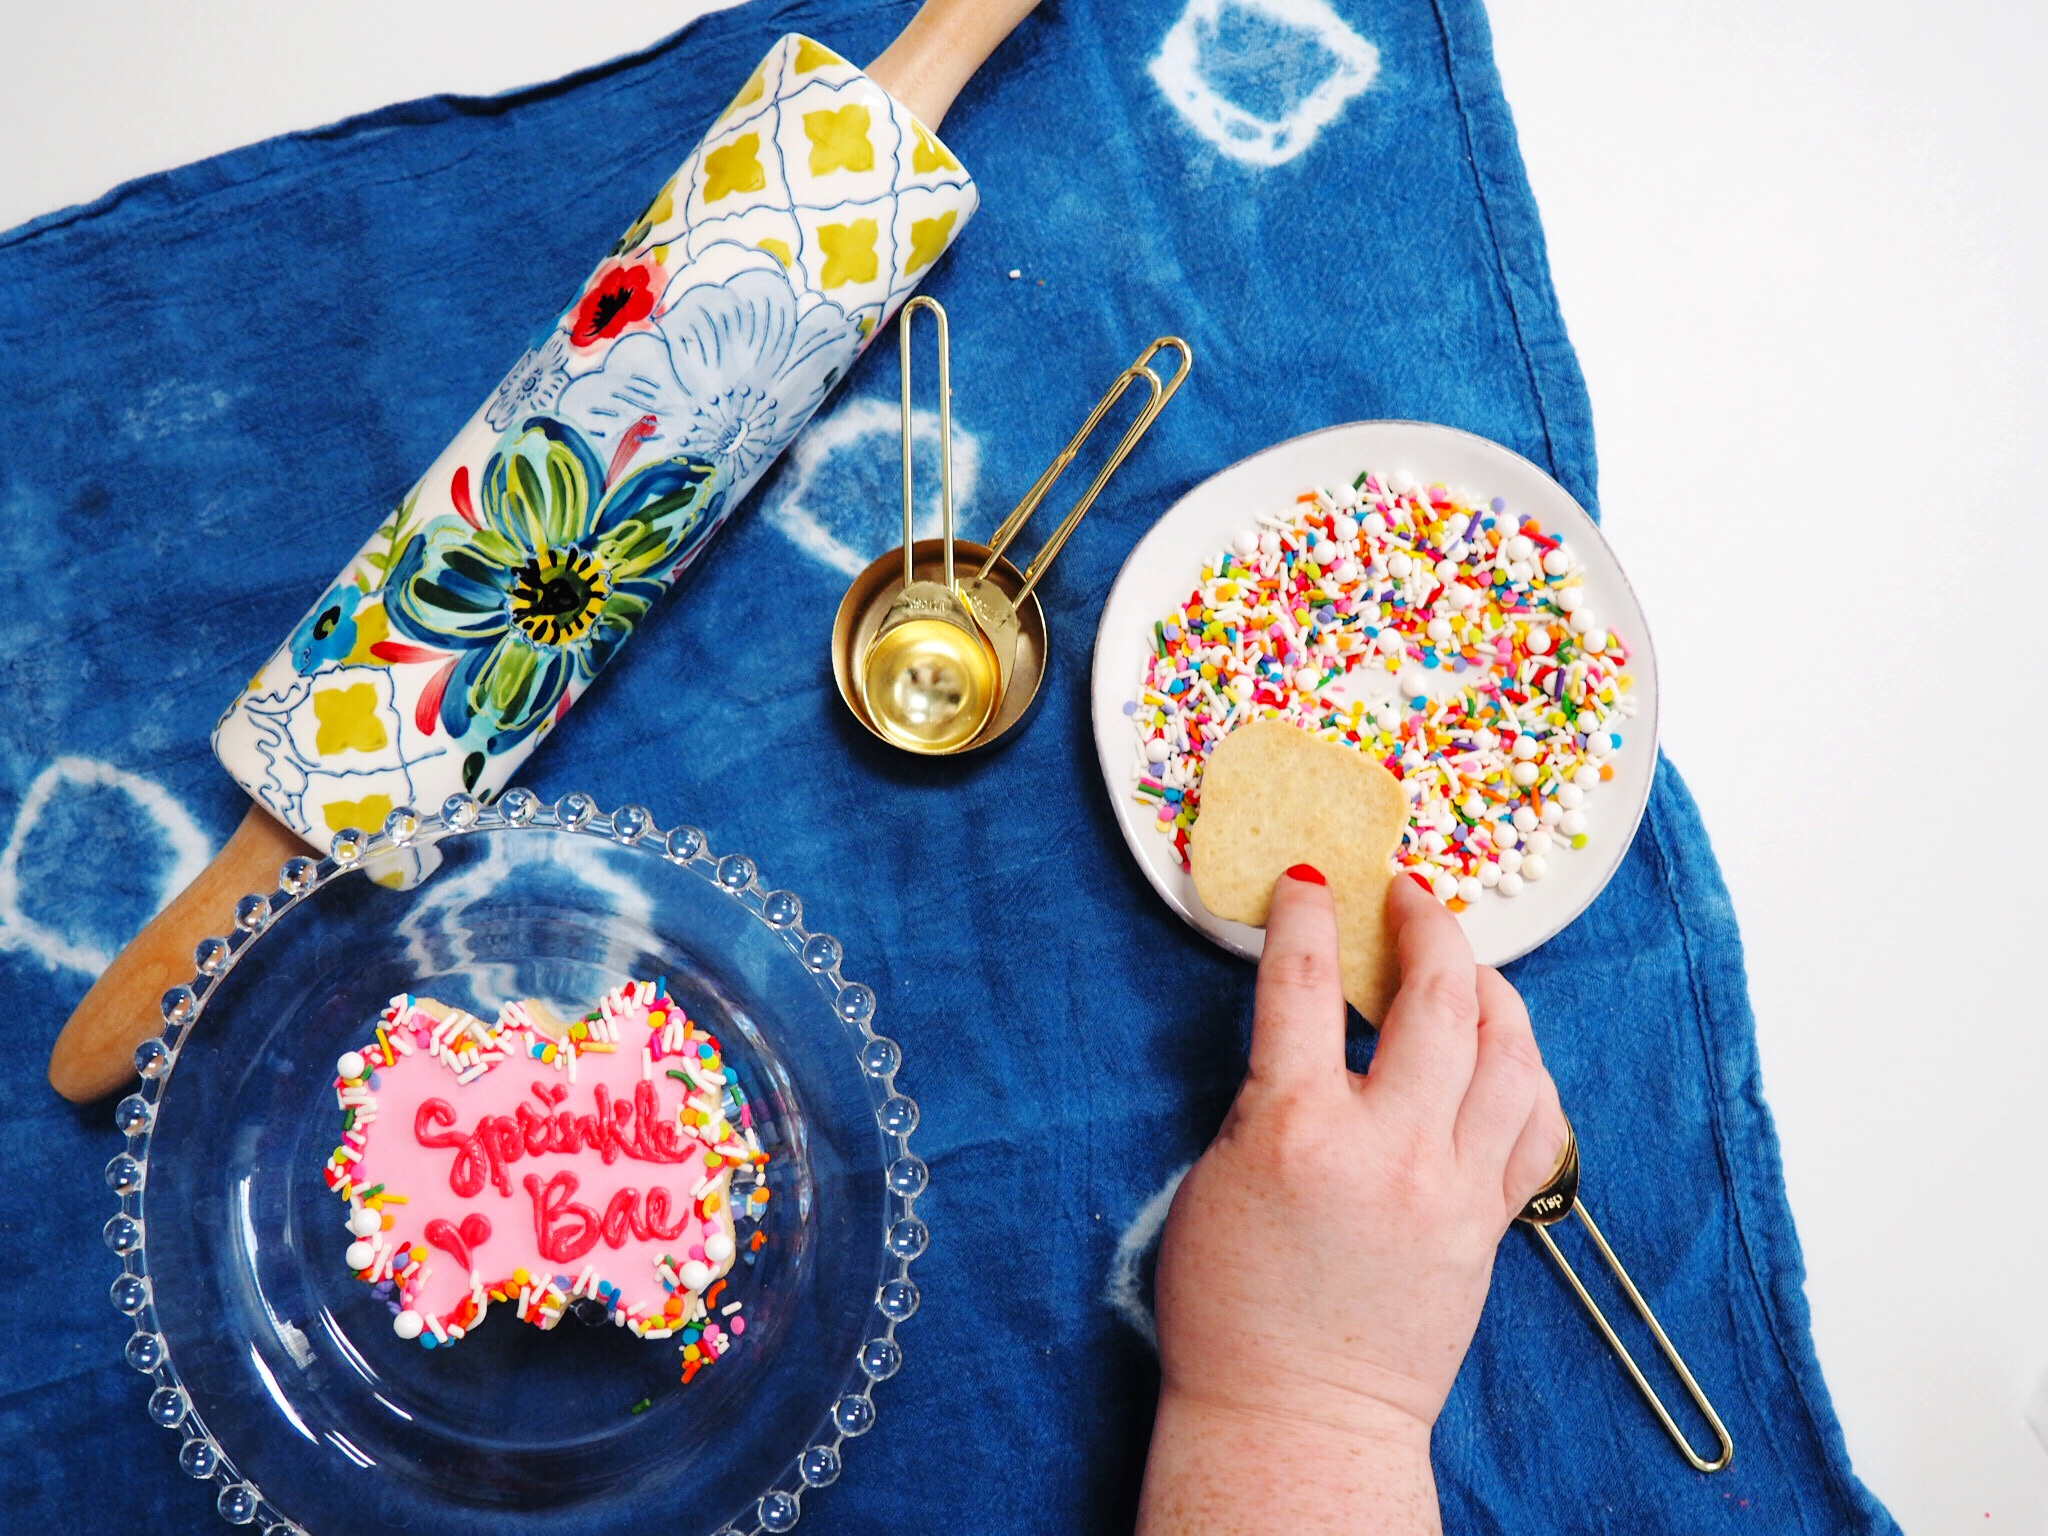 Mindy's Bakeshop custom cookie decorating austin texas